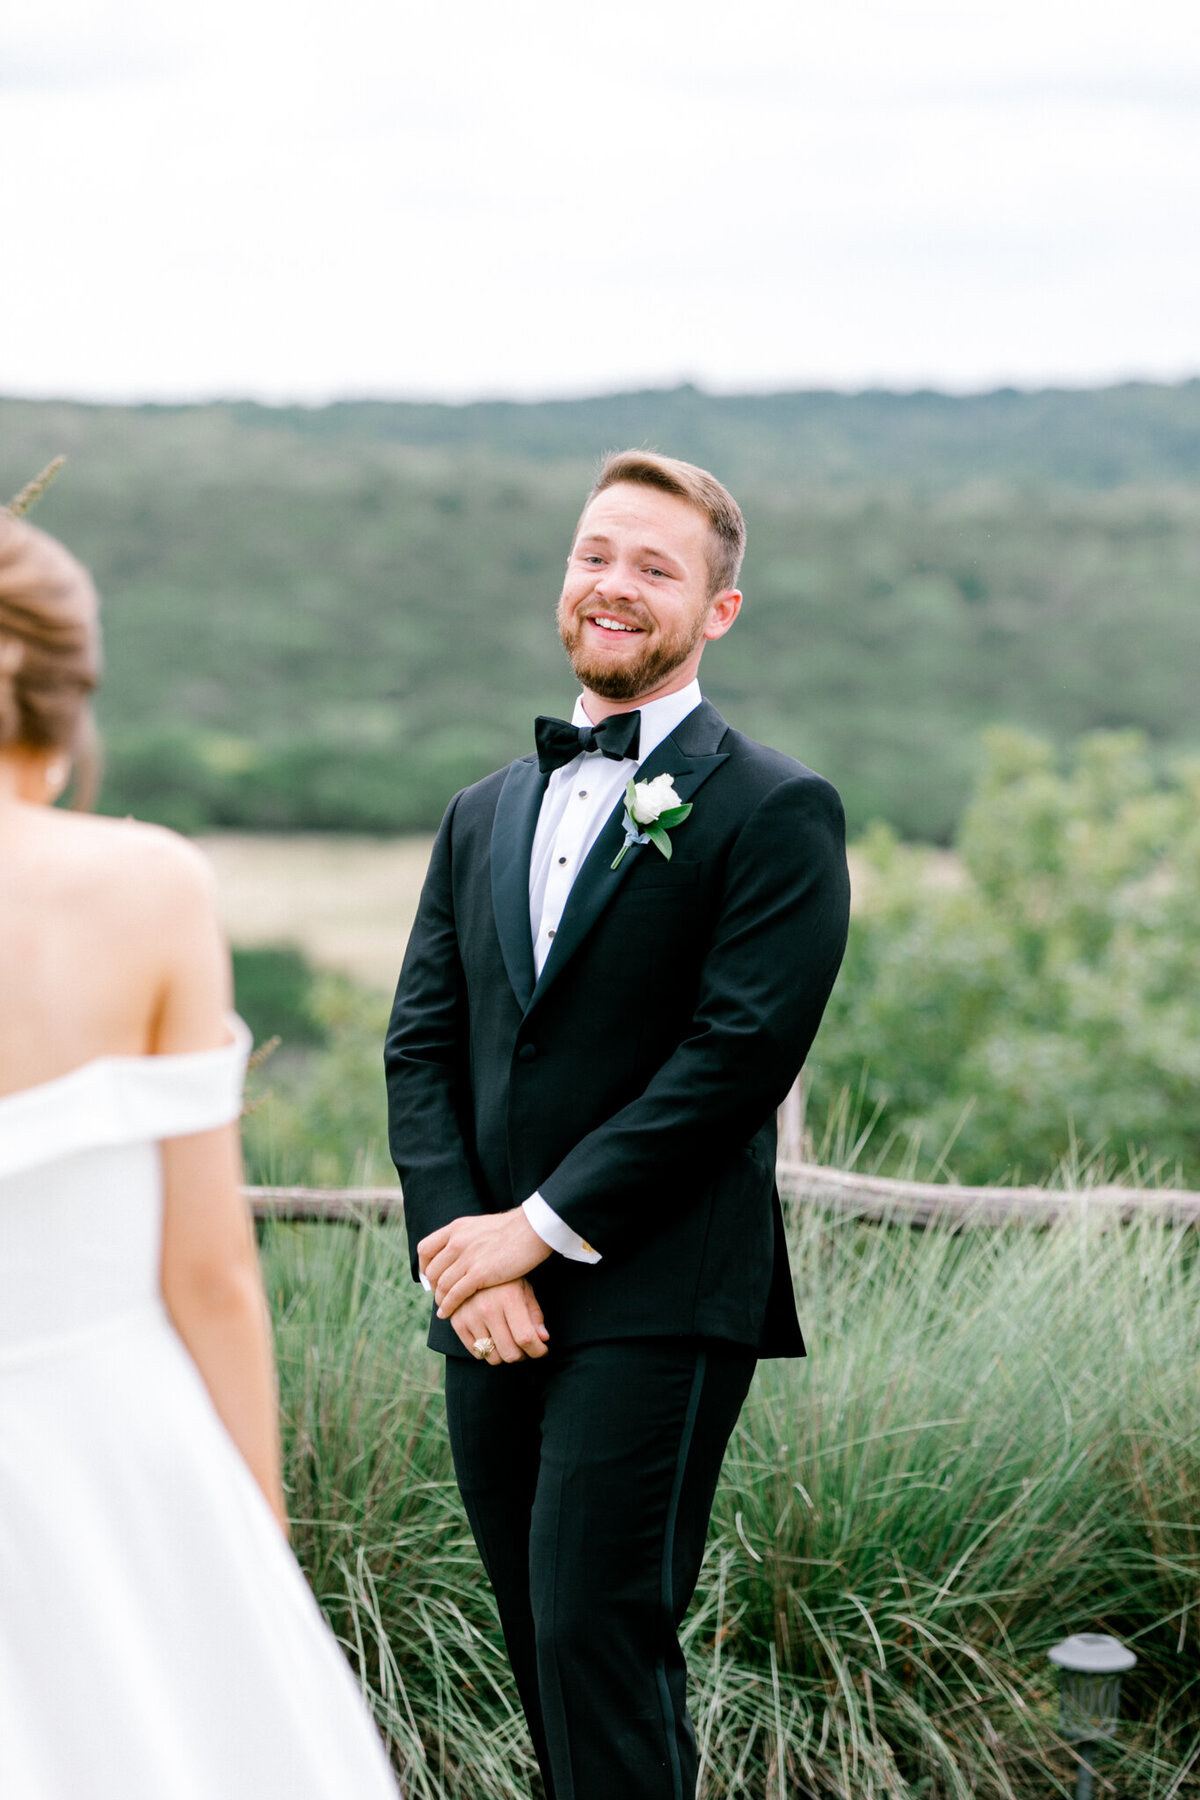 Lexi Broughton & Garrett Greer Wedding at Dove Ridge Vineyards | Sami Kathryn Photography | Dallas Wedding Photography-68